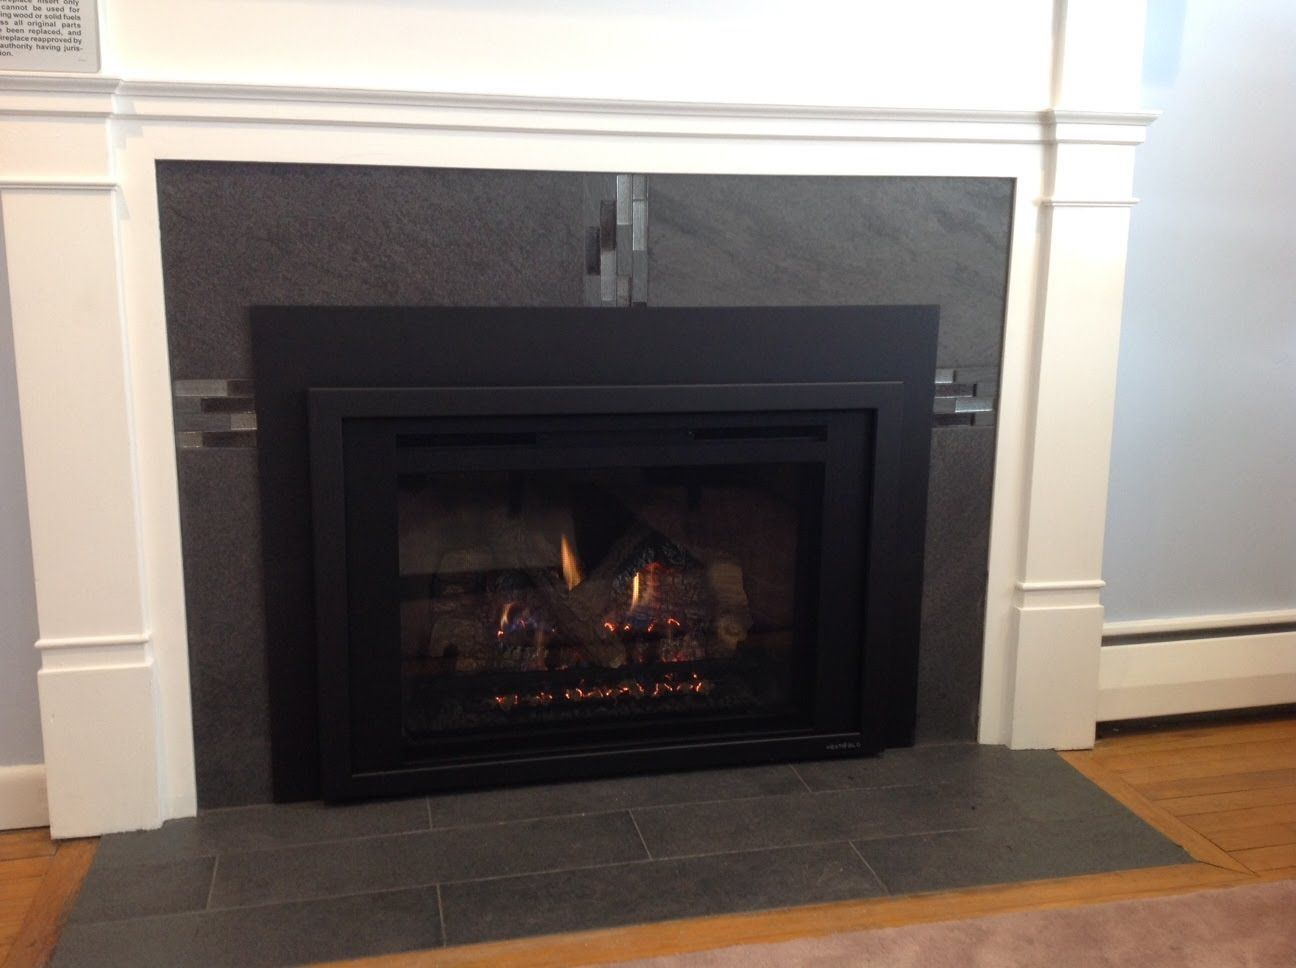 How To Reface A Fireplace For A Gas Insert Reface Fireplace Gas